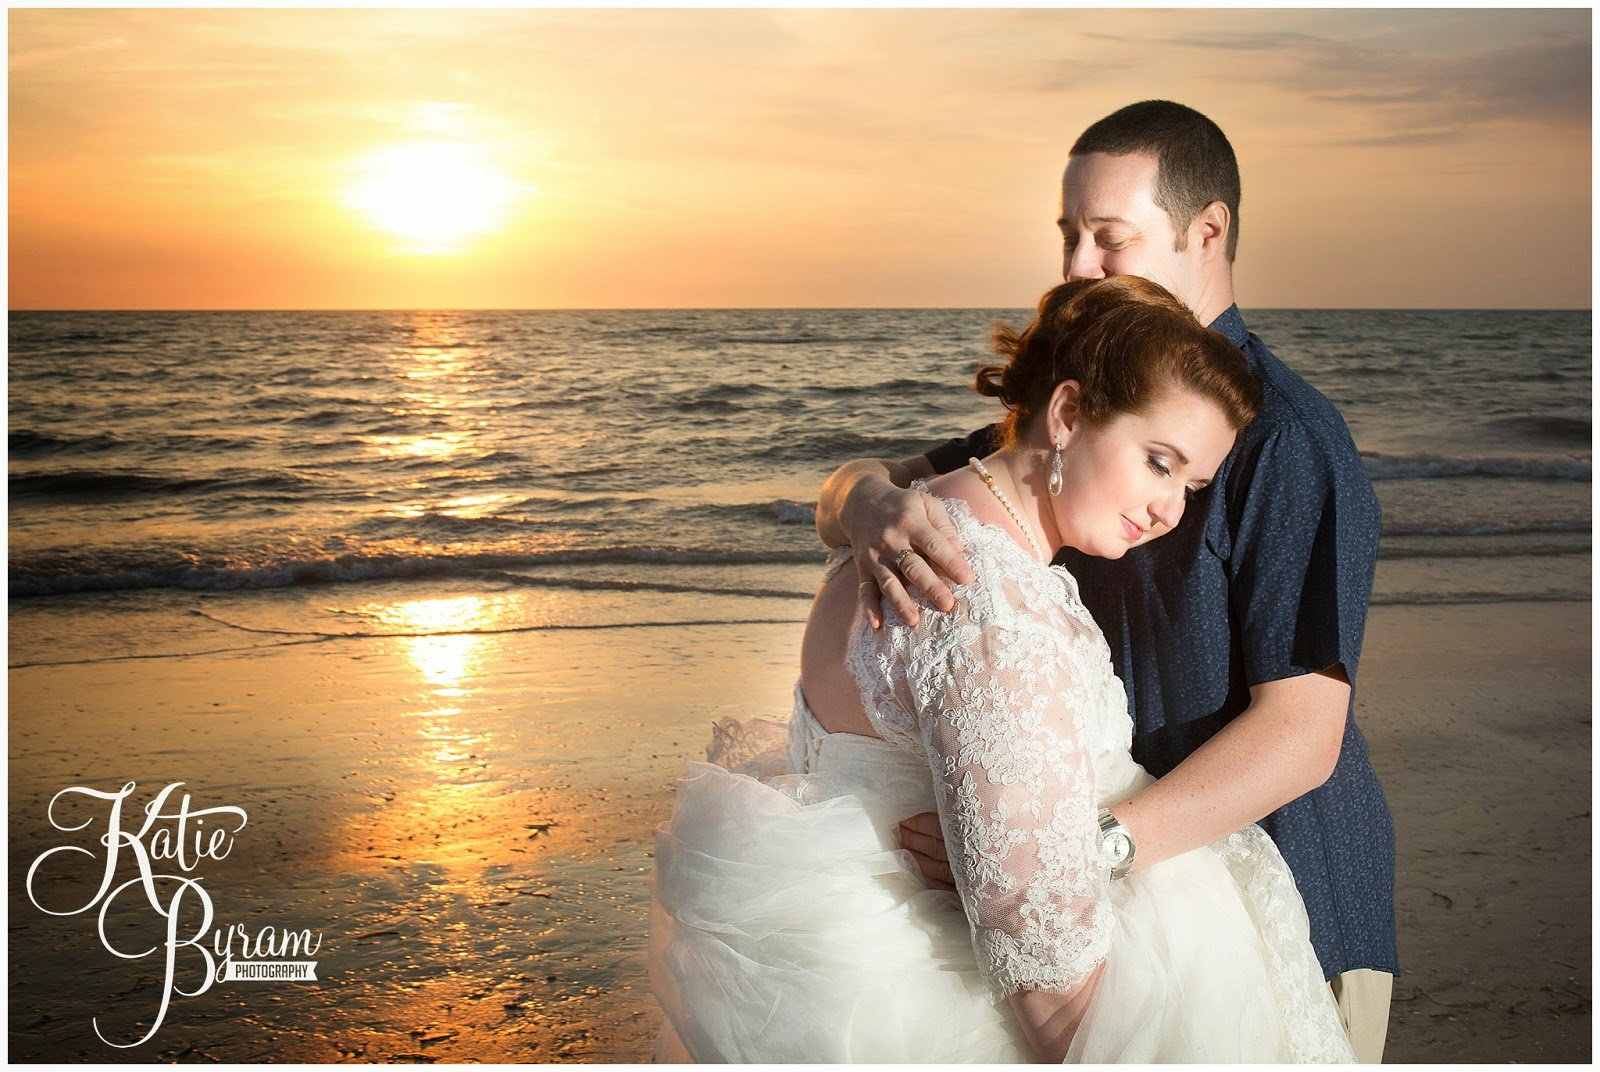 sunset wedding photographs, nautical wedding, beach wedding theme, destination wedding, clearwater beach wedding, hilton clearwater beach wedding, katie byram photography, florida wedding